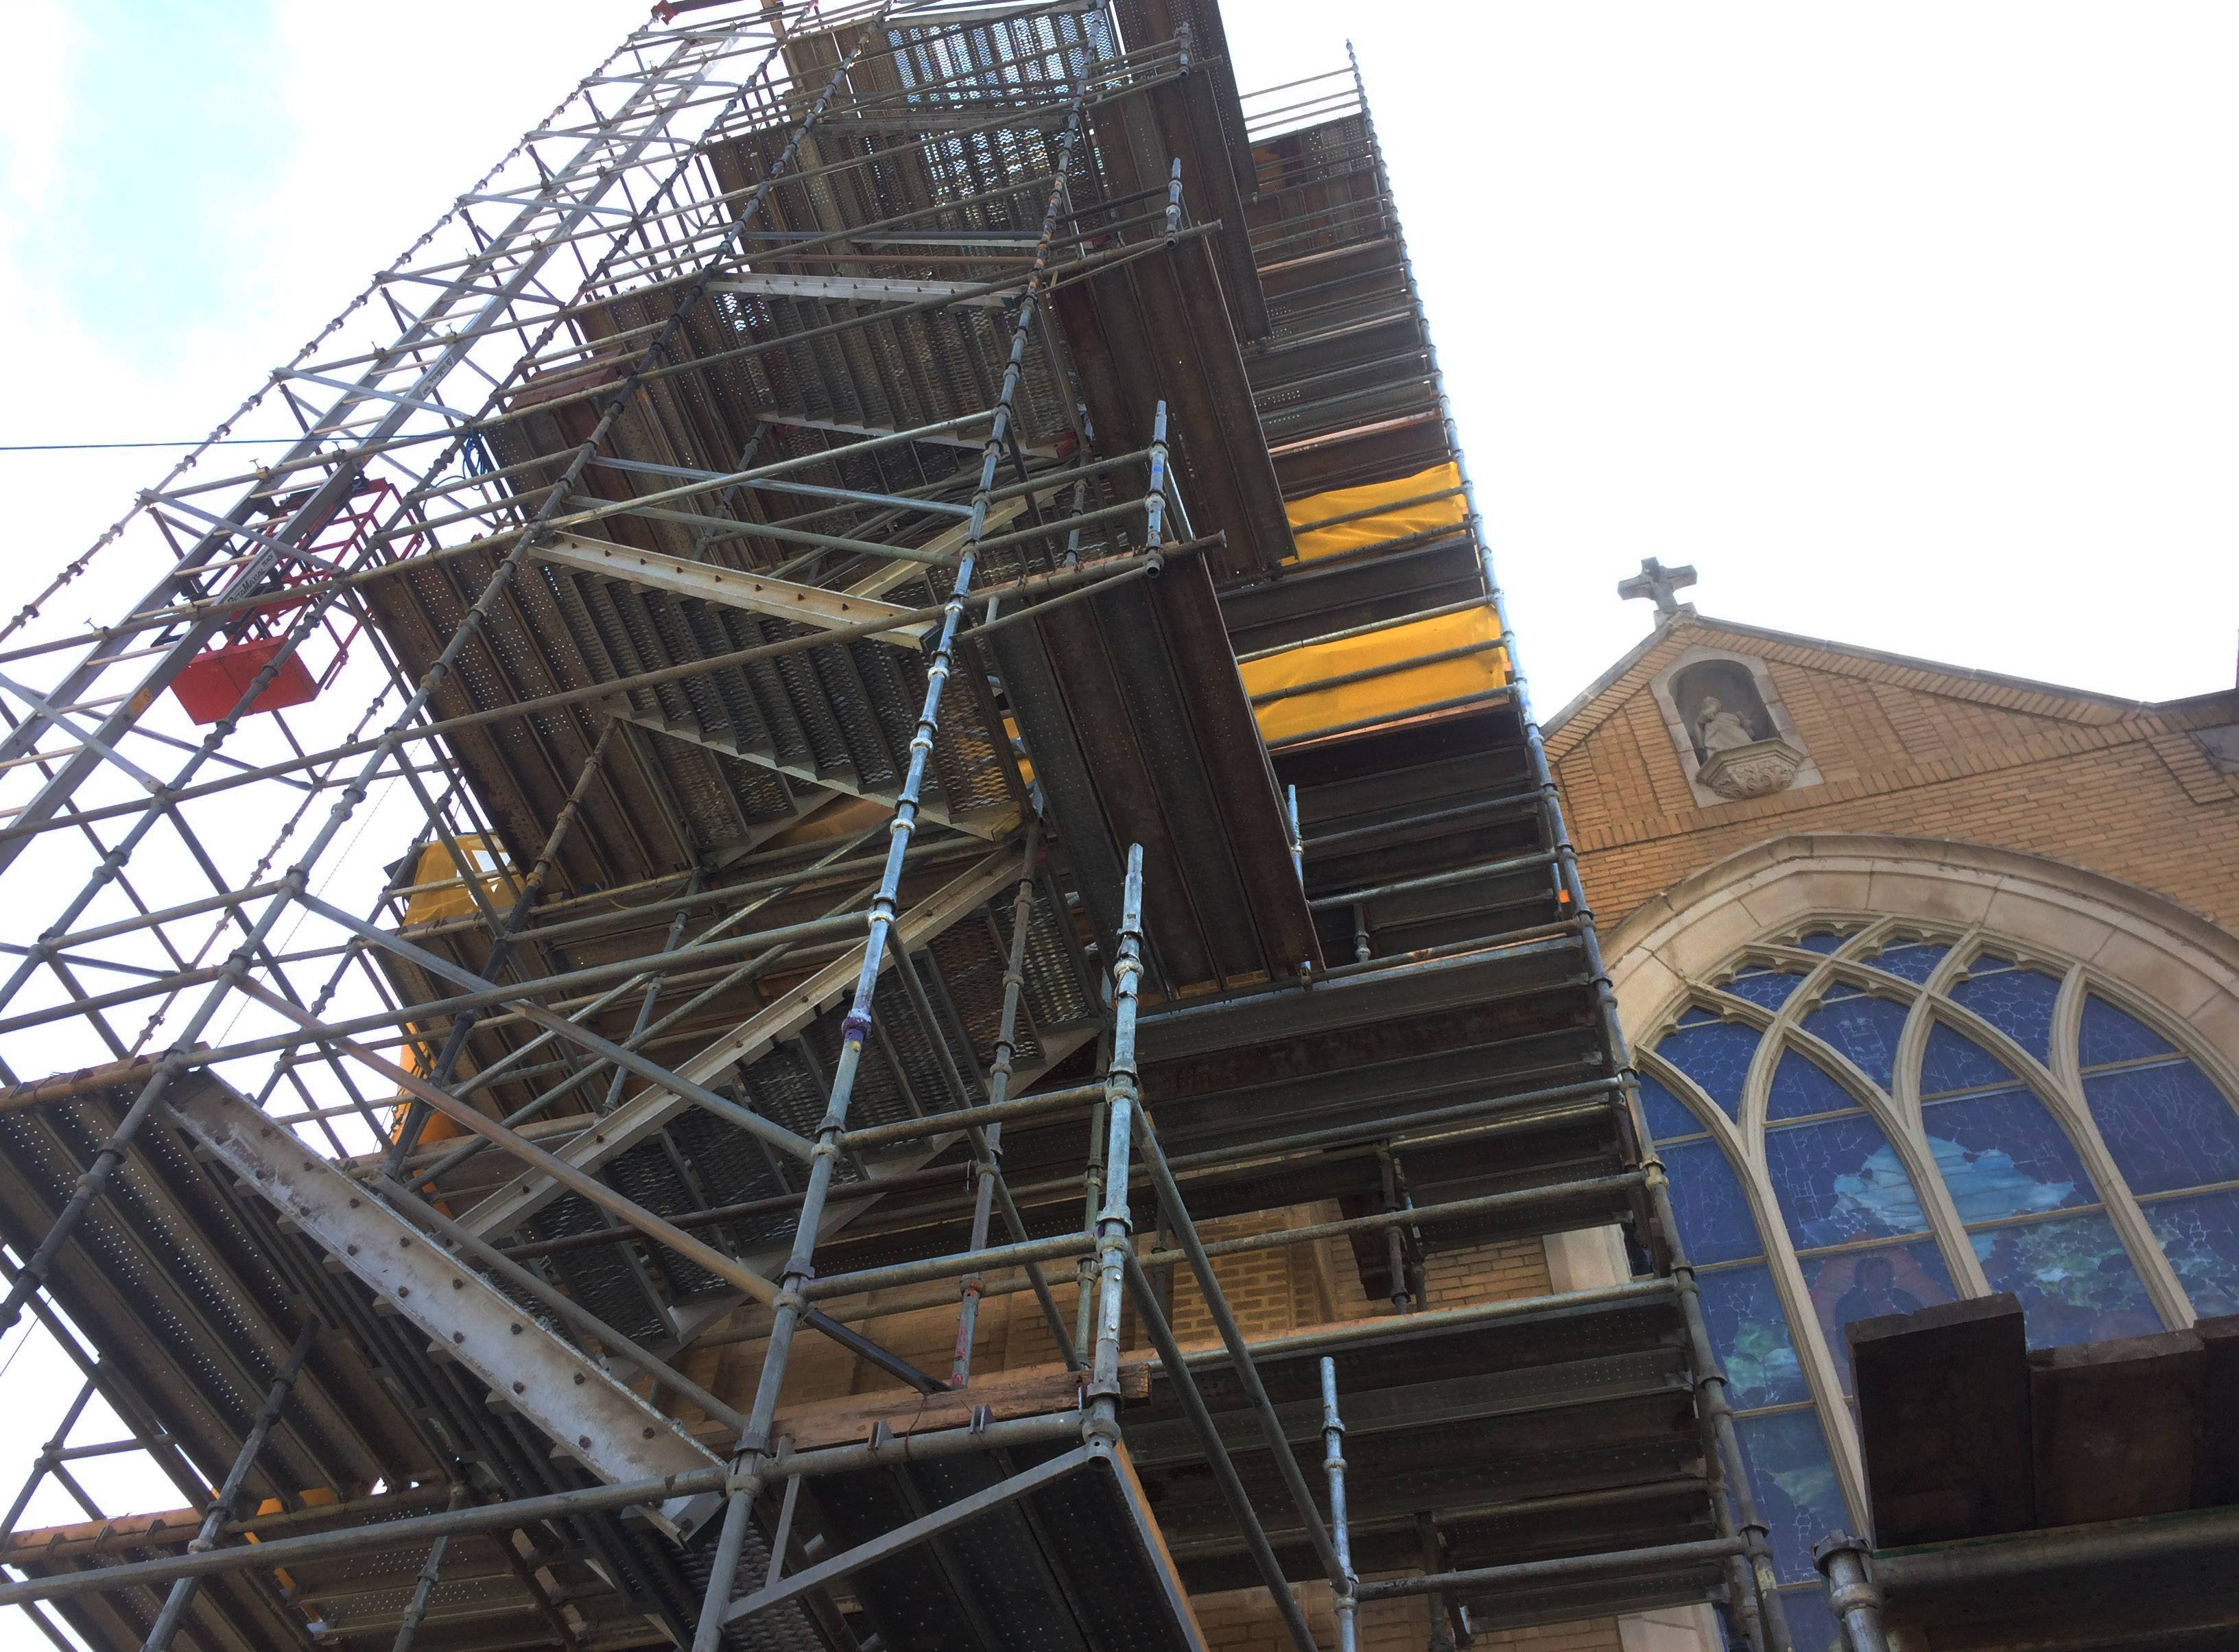 The scaffolding at St. Peter Church in Volo extends high as a crew works to repair the brick and restore the original bell tower and spire which was removed after being damaged by lightning in 1961.